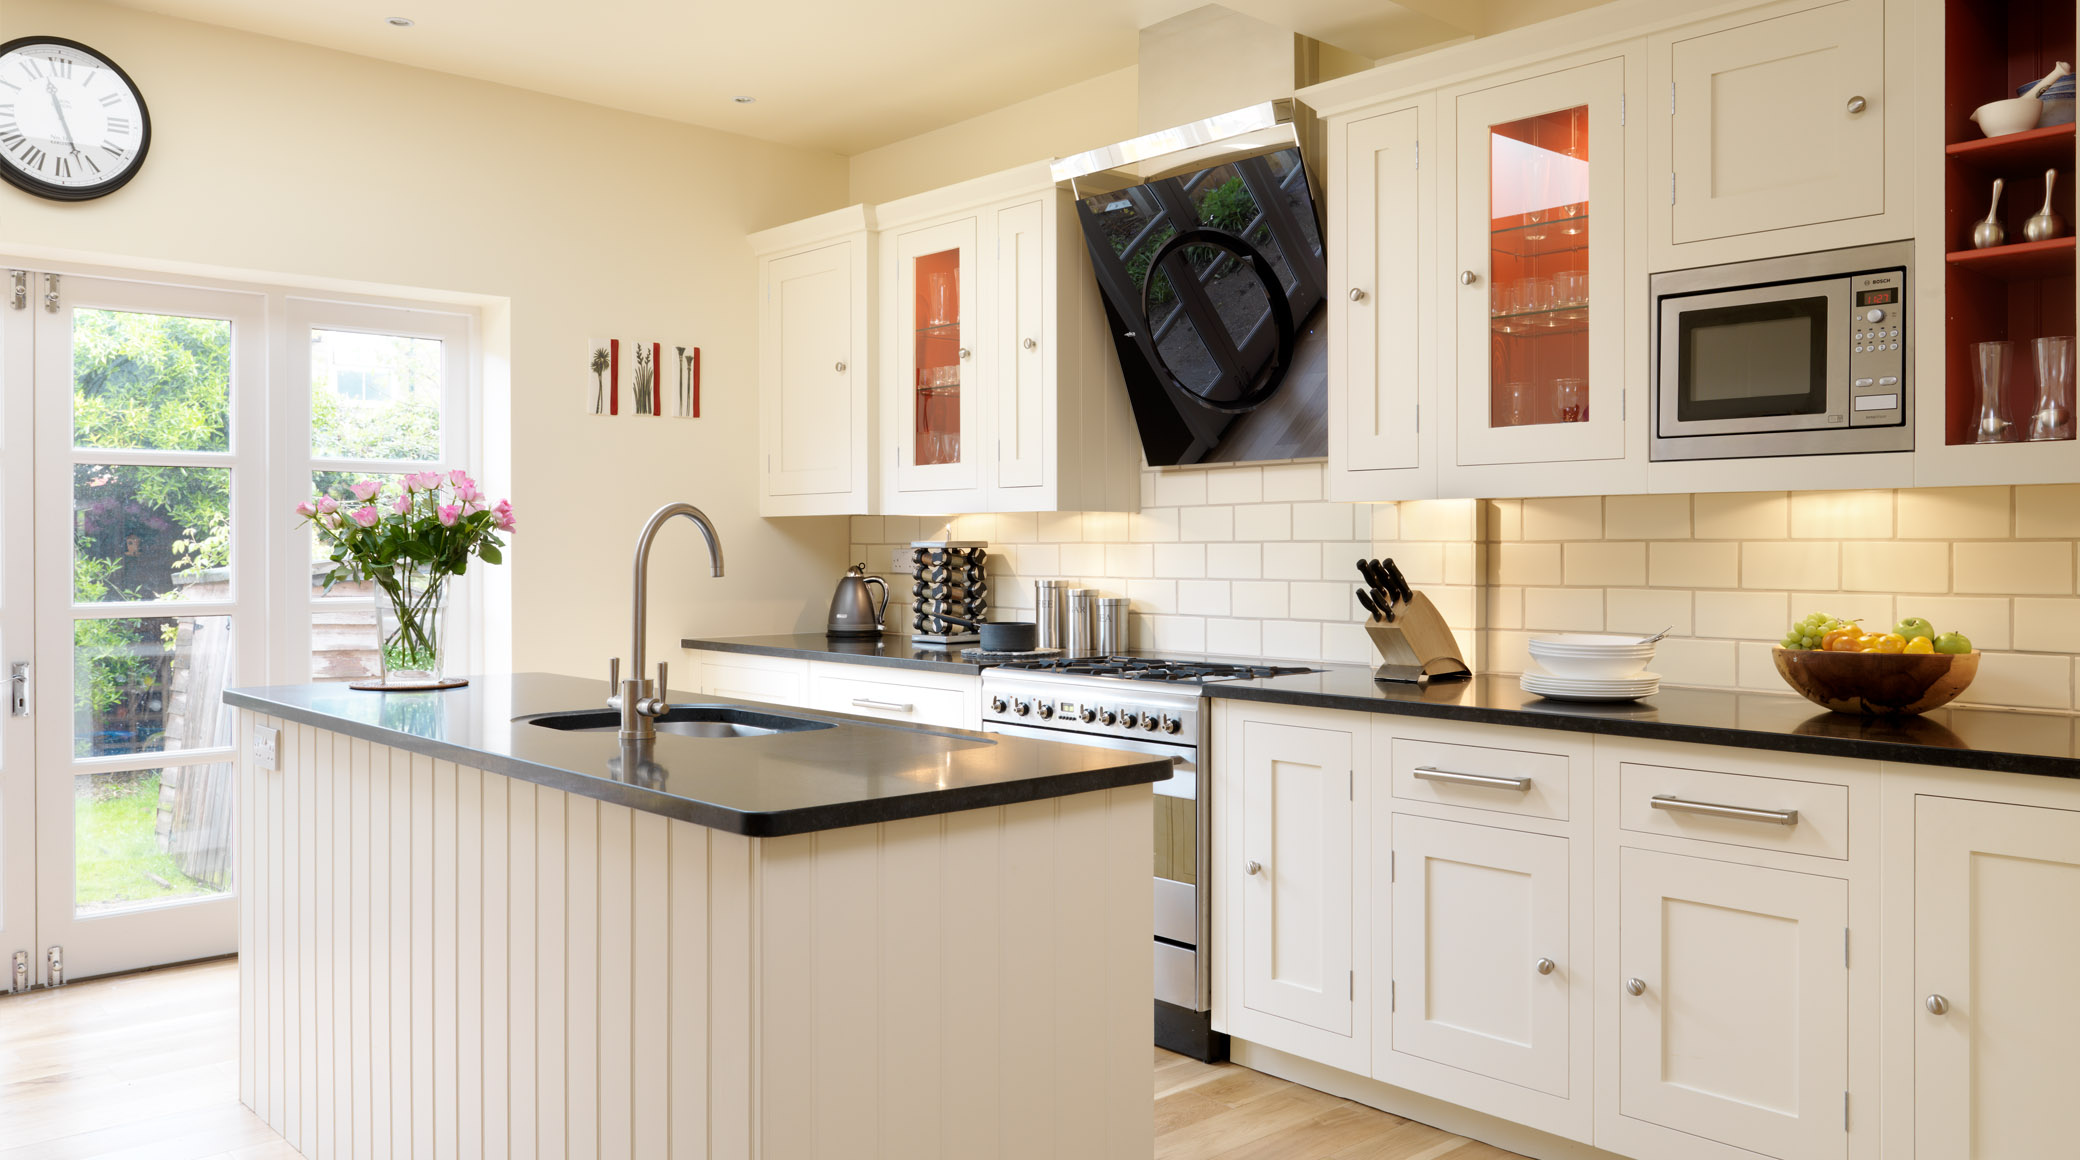 Harvey Jones Shaker kitchen with painted interiors | Our Shaker ...